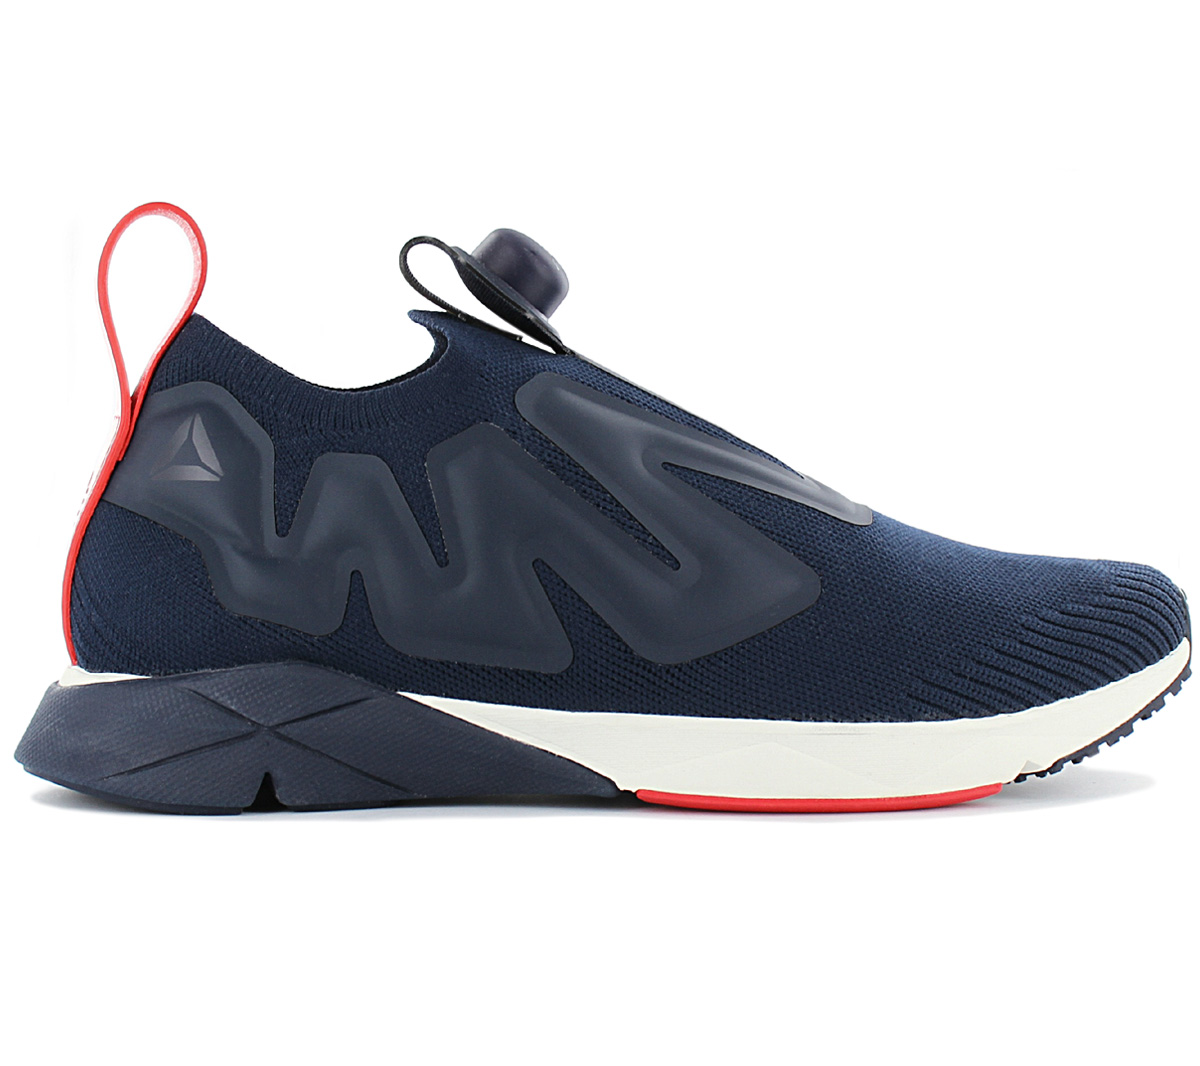 d83e9764 Reebok Pump Supreme Ultk Ultraknit Cn0078 Men's Sneakers Running ...